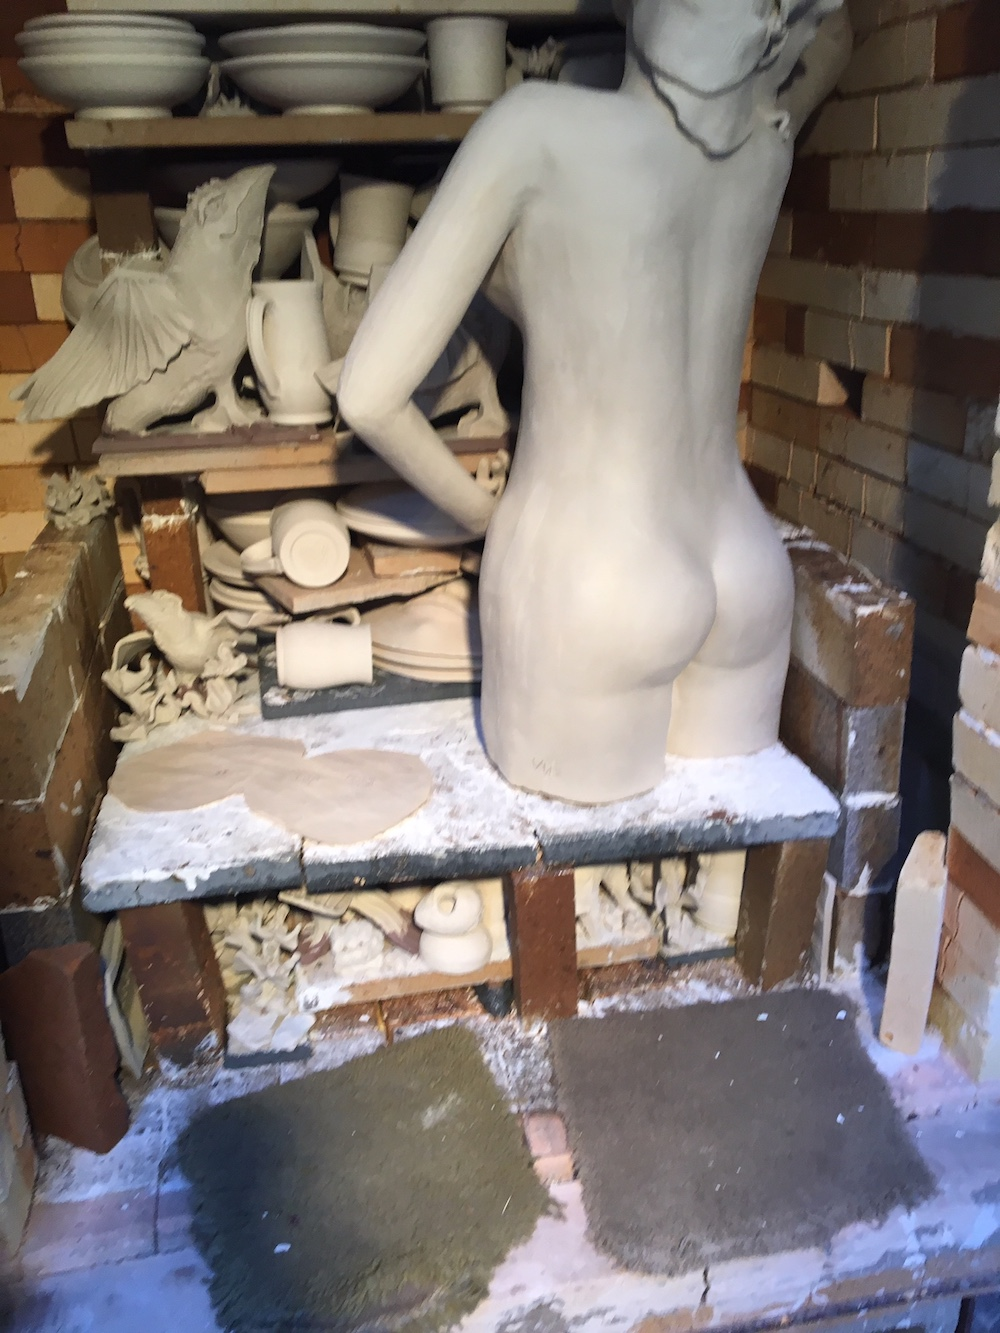 Nymph going in kiln